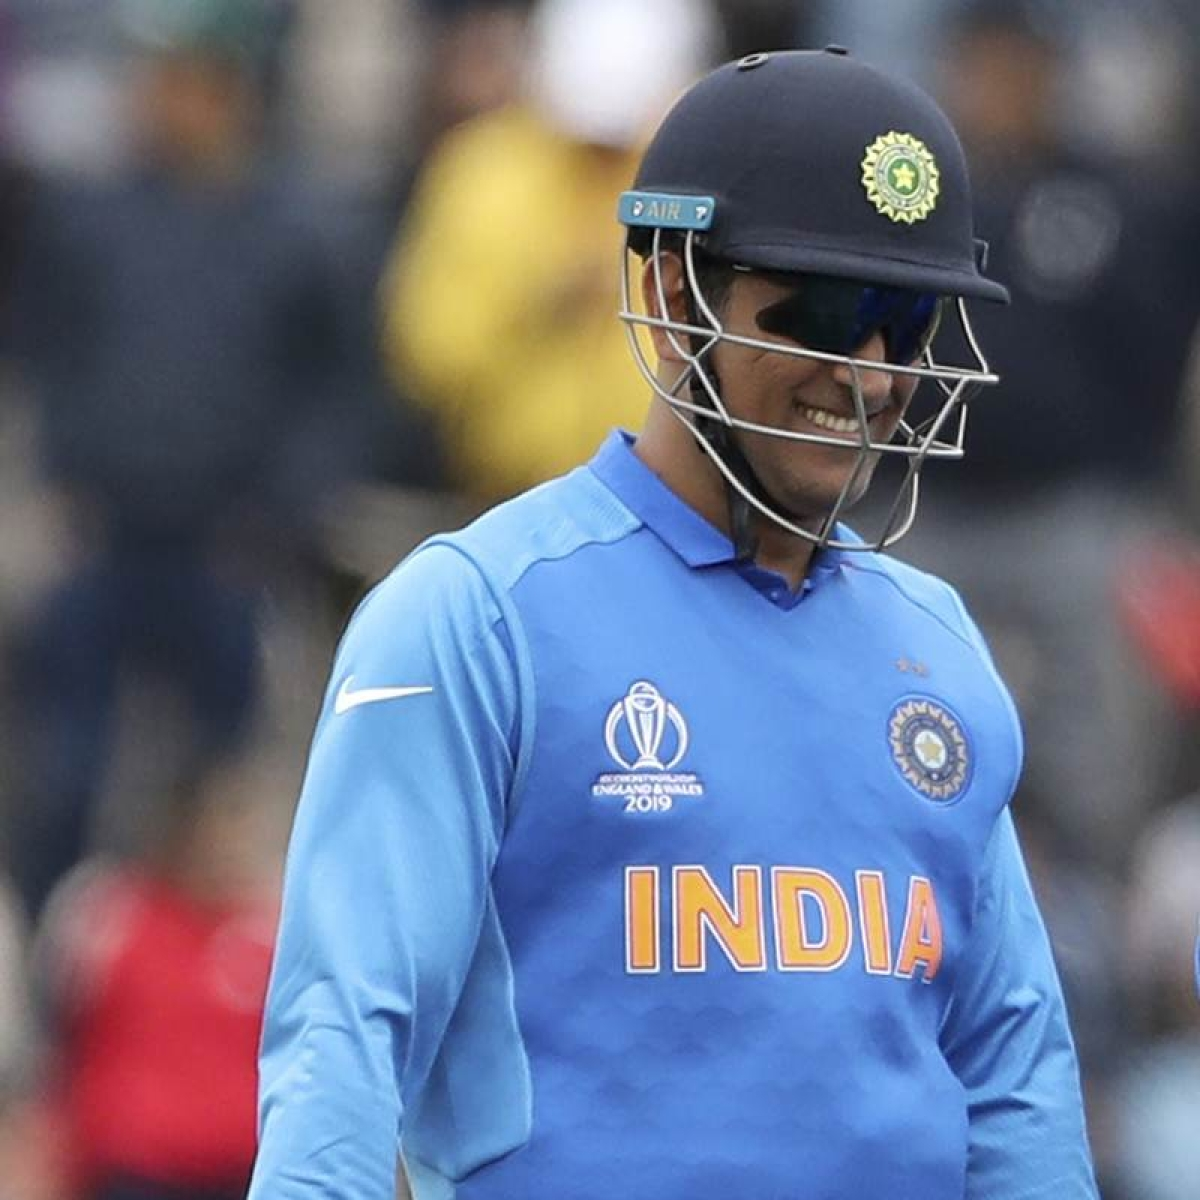 Team India must ensure Dhoni gloves controversy doesn't distract them from big Aussie challenge